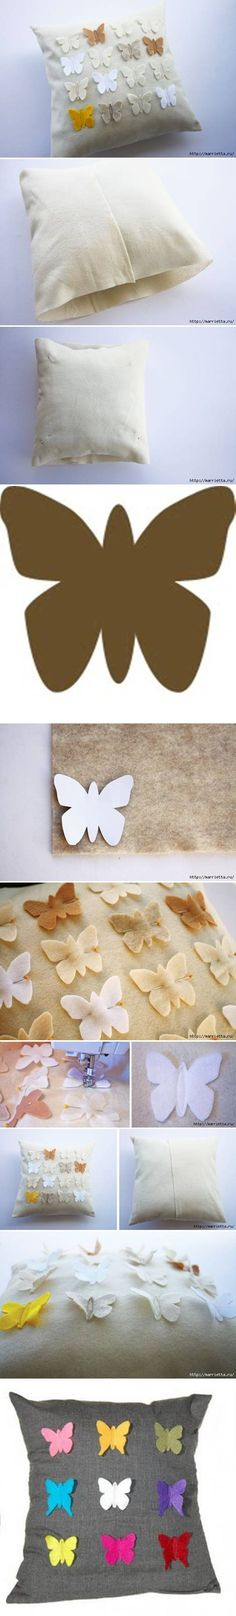 DIY Butterfly Pillow Cover hand, diy tutorial, accent pillows, craft idea, pillow covers, diy butterfli, butterfli pillow, diy projects, craft diy